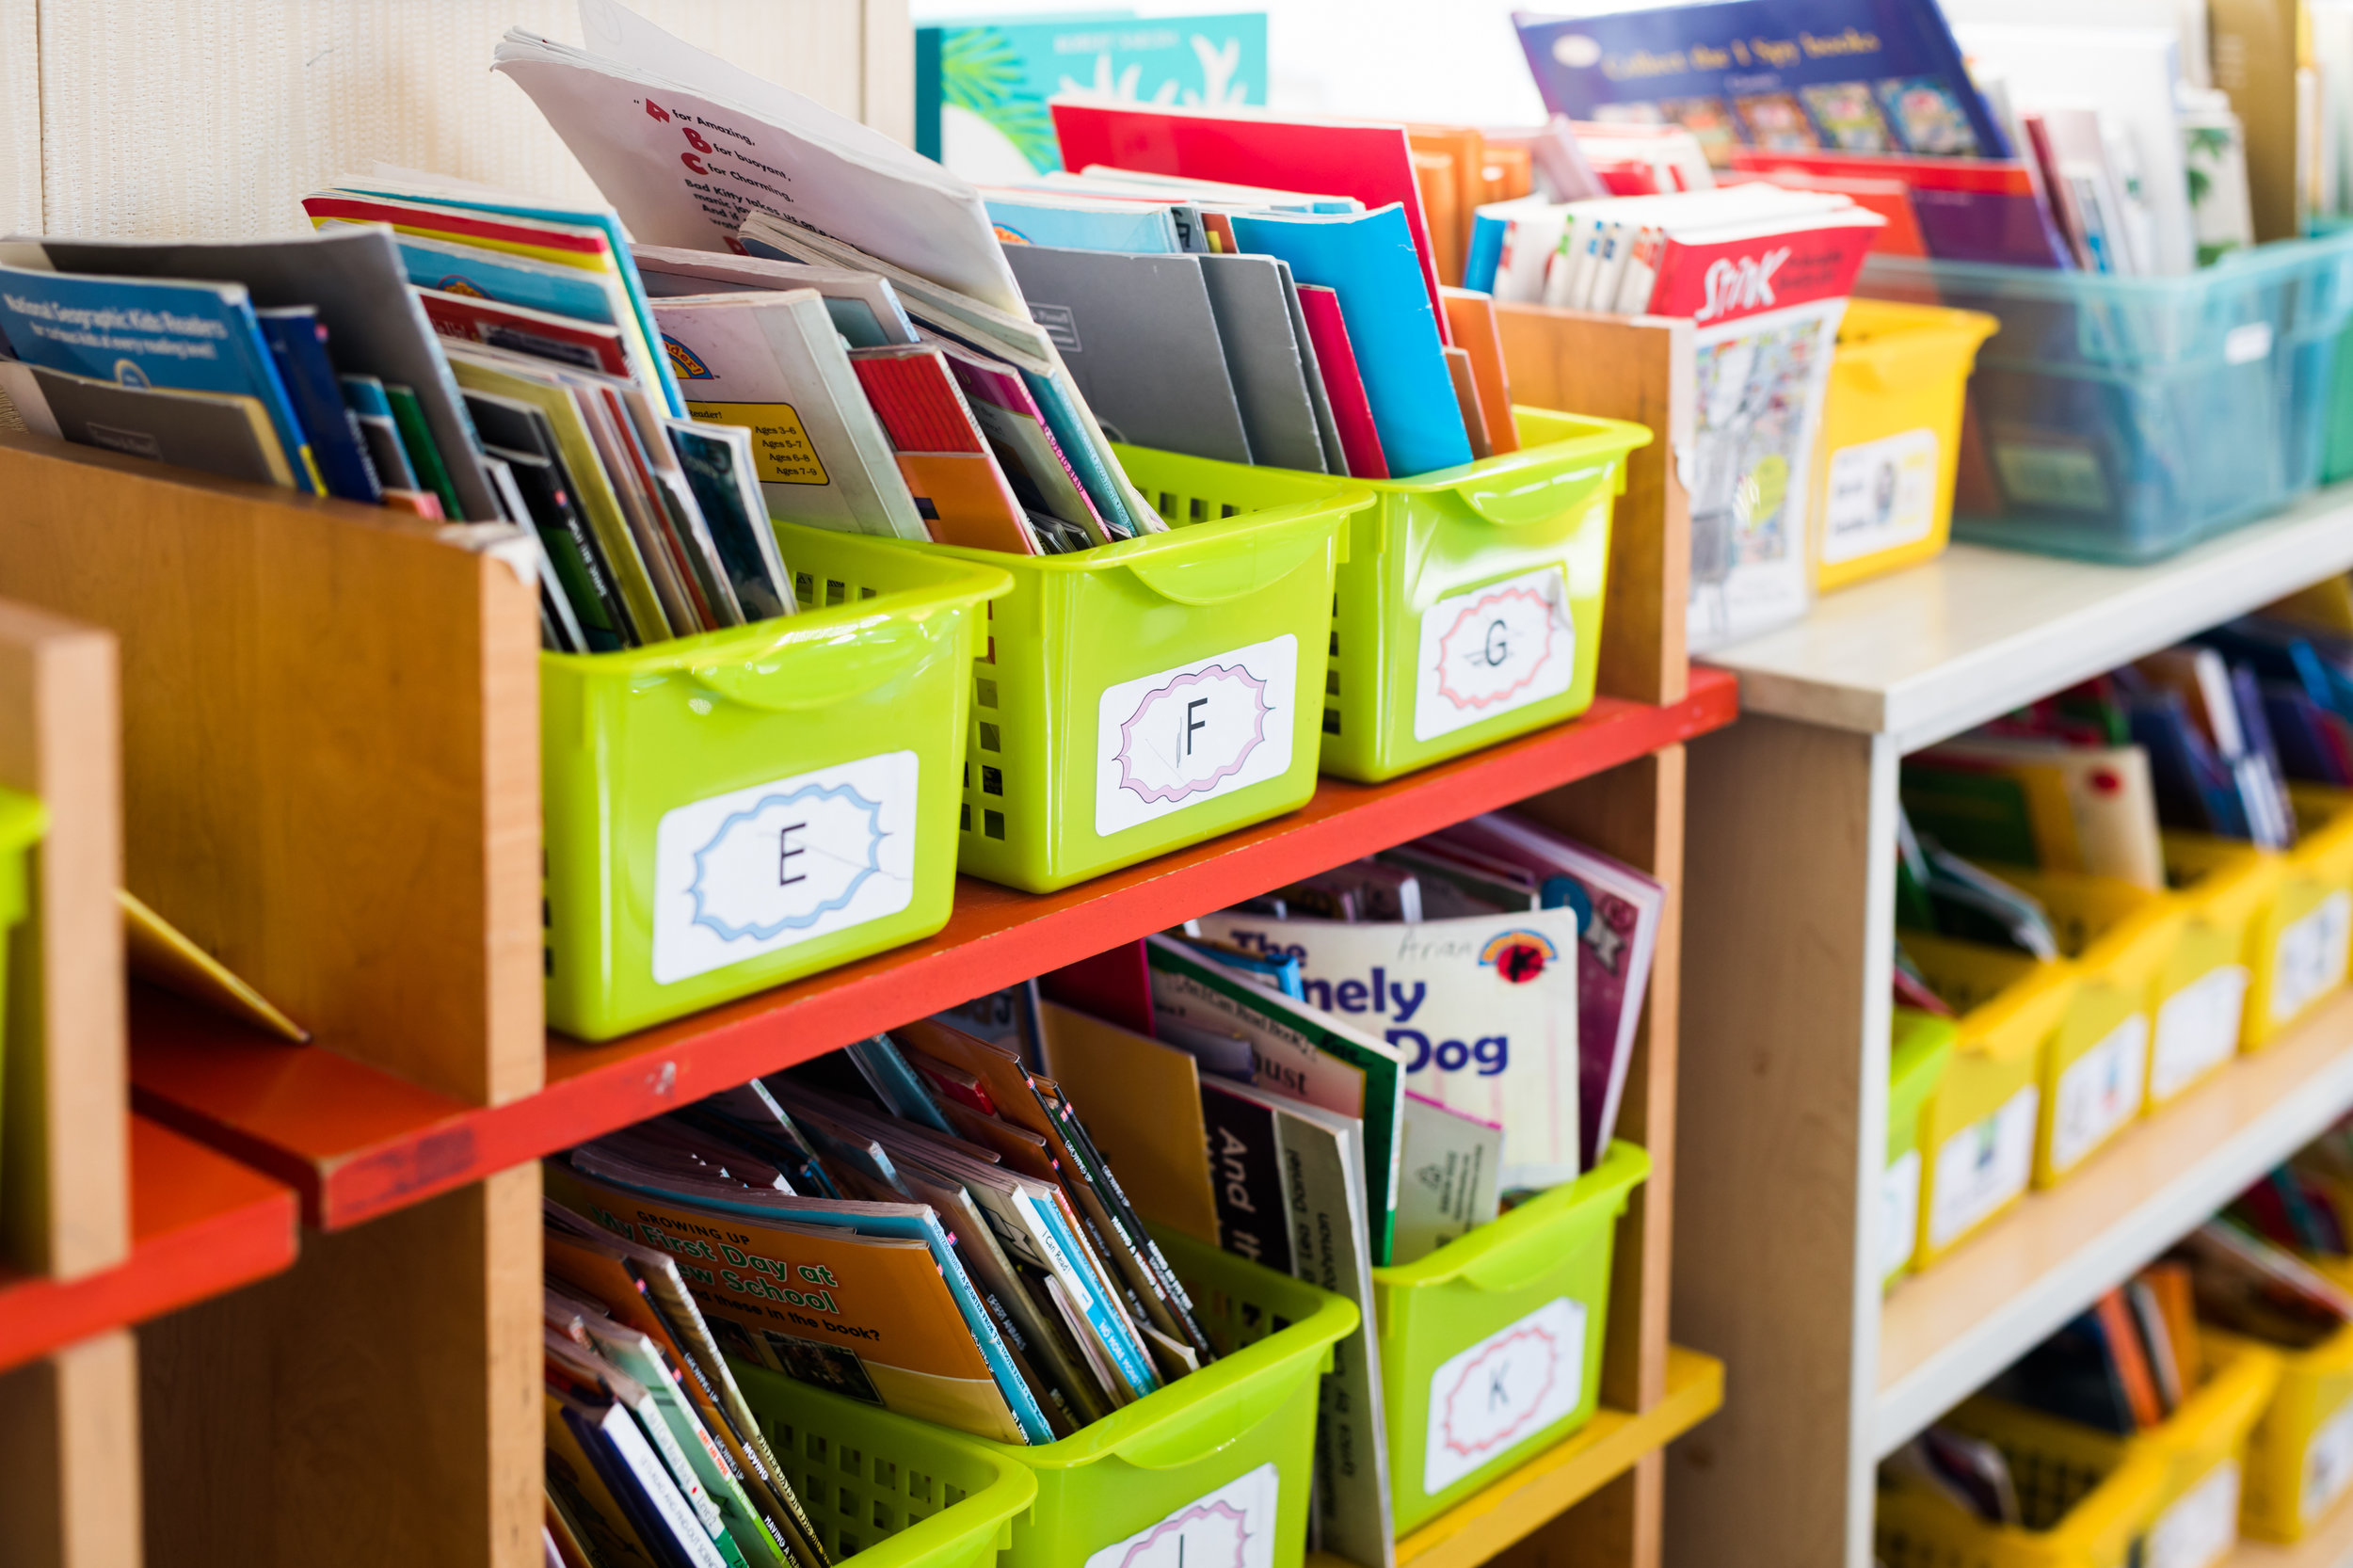 In-Kind Gifts - The value of an in-kind gift is tax-deductible and may include a range of items such as books, furniture and equipment, or pro-bono services. We'll help match your donation with a particular need at one of our schools!  Please call Stephanie Lam at (415) 241-5578 for information on making an in kind gift.